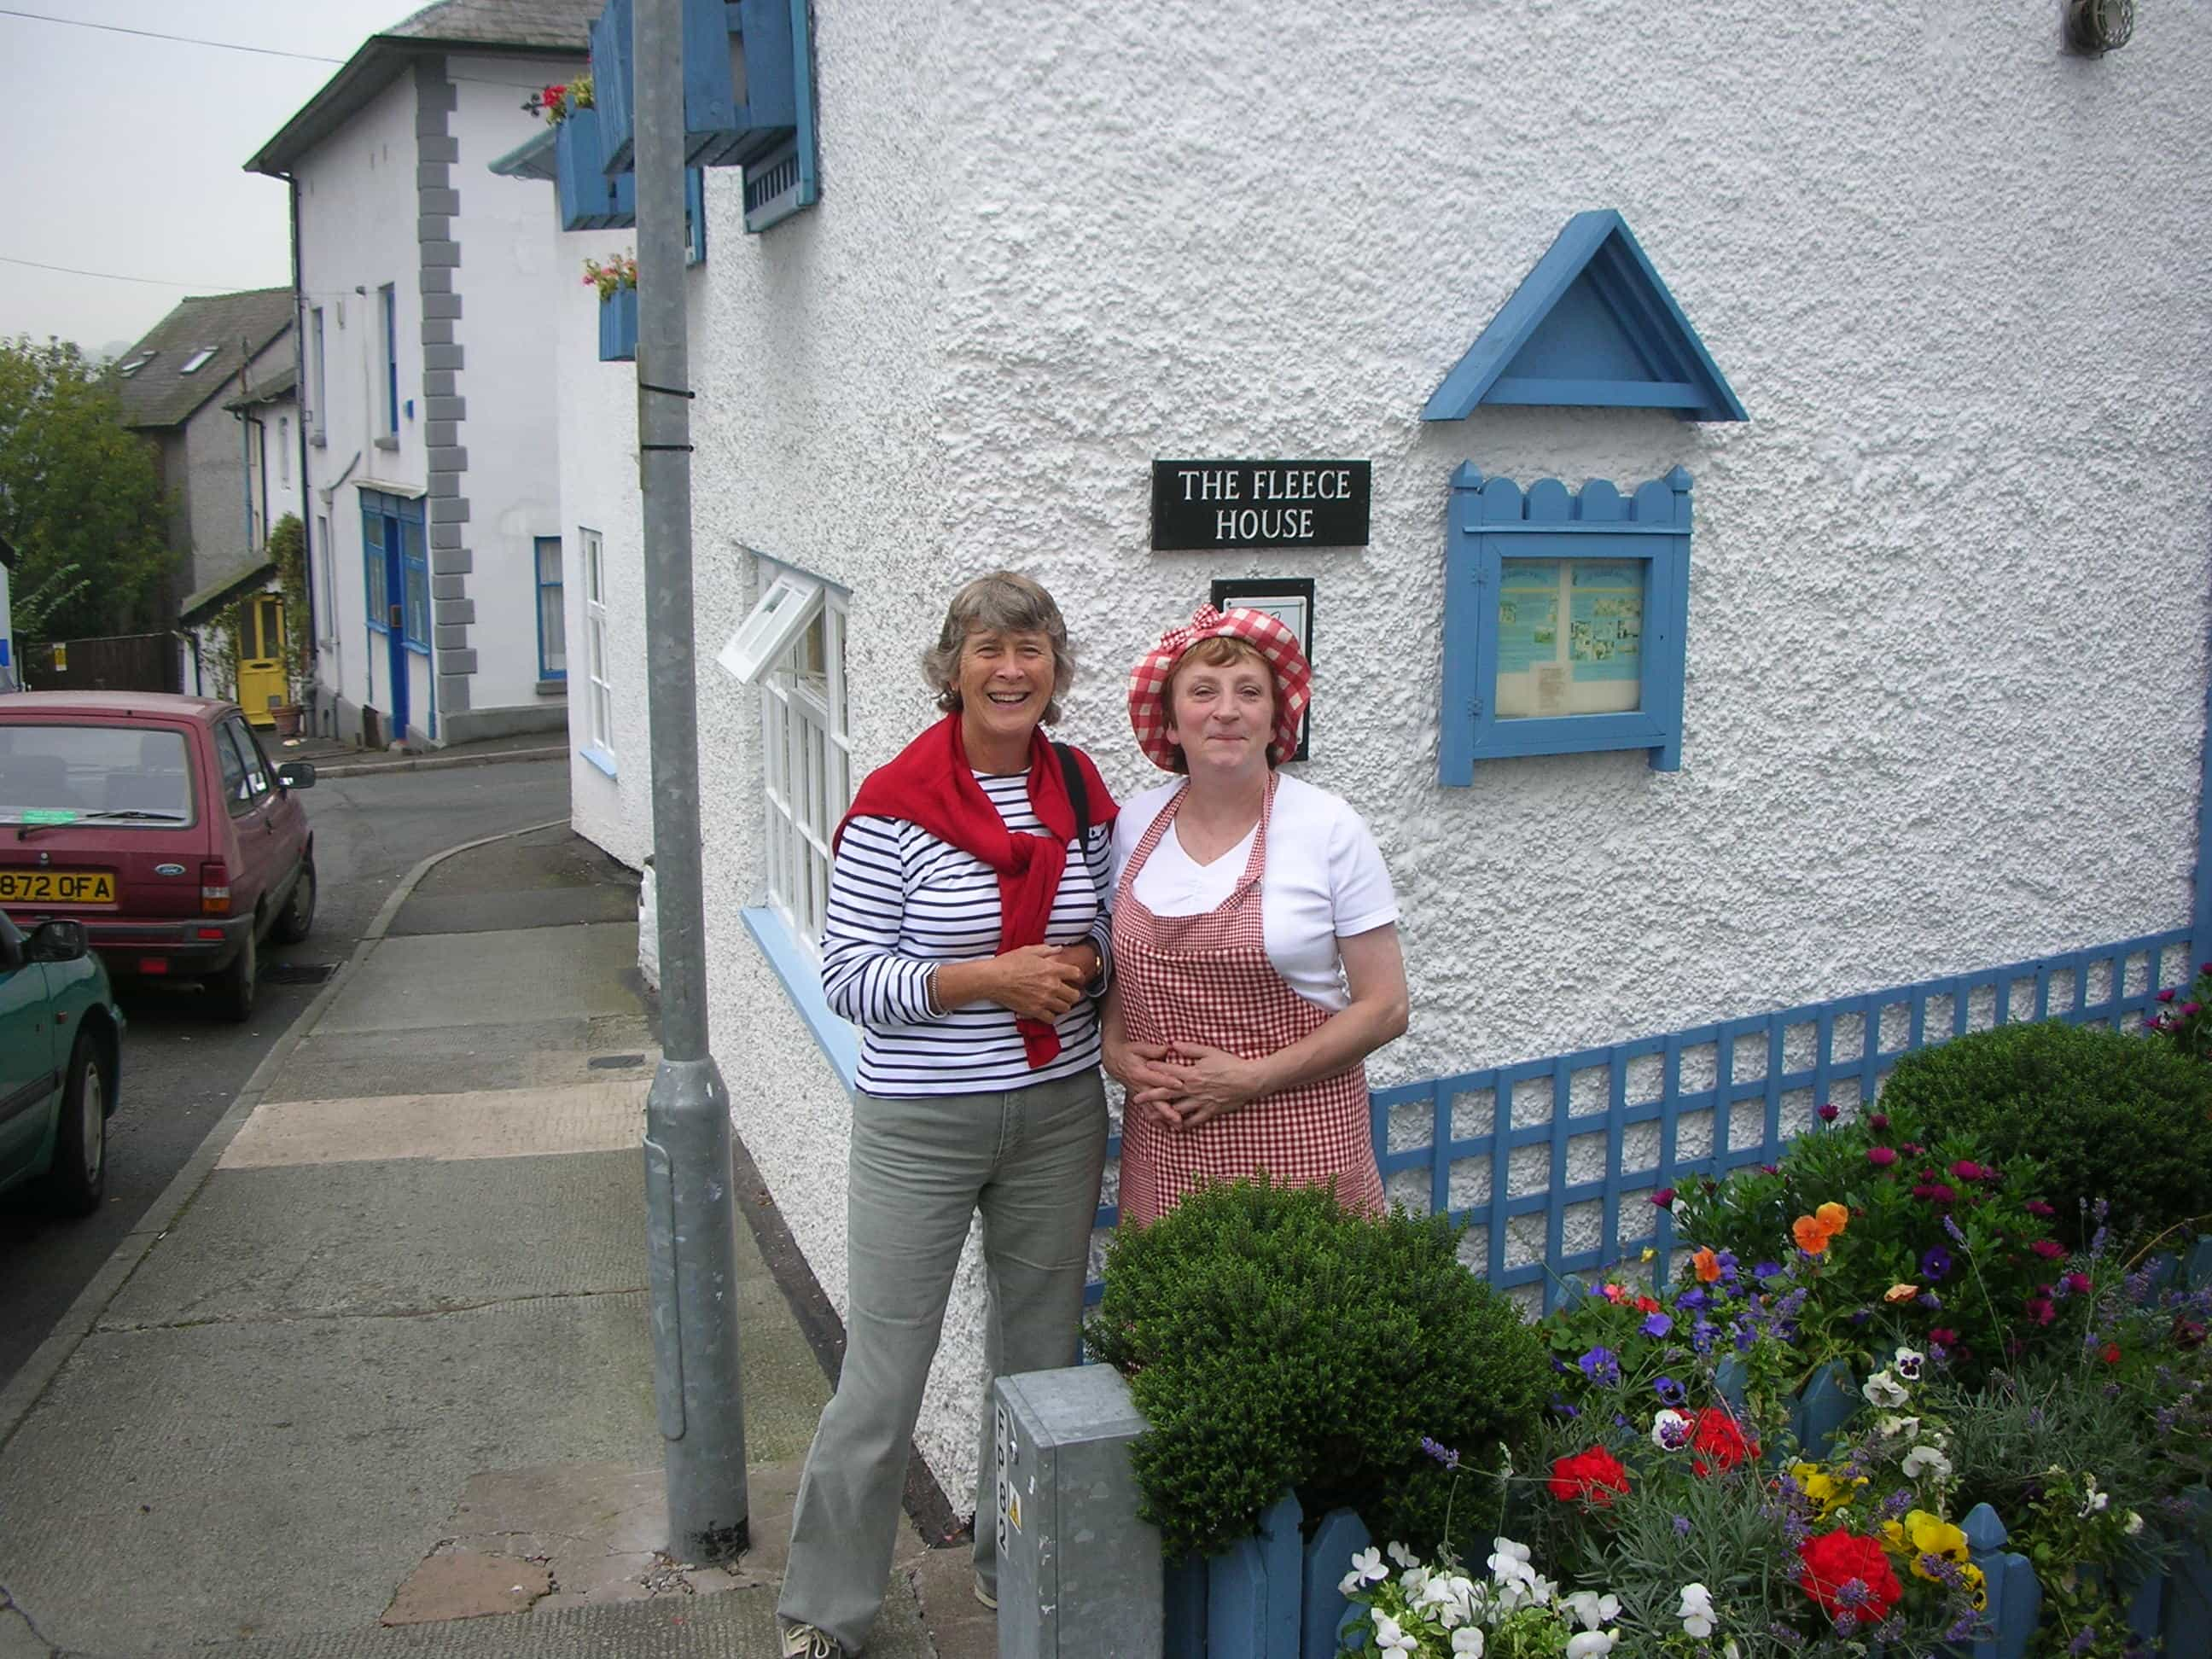 The Fleece house cottage Offa's Dyke